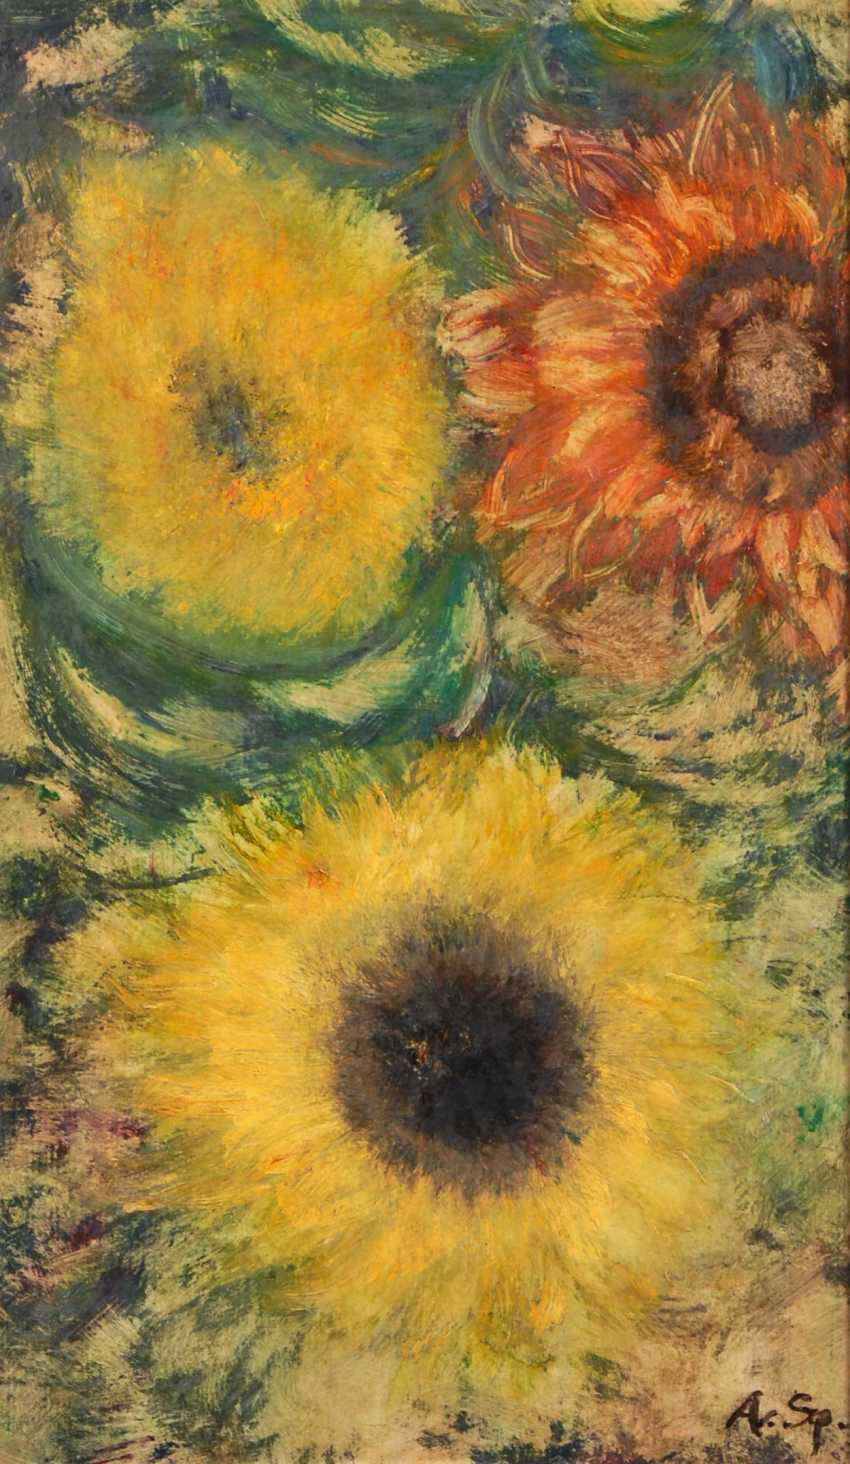 Szpinger, Alexander of sun flowers. - photo 1